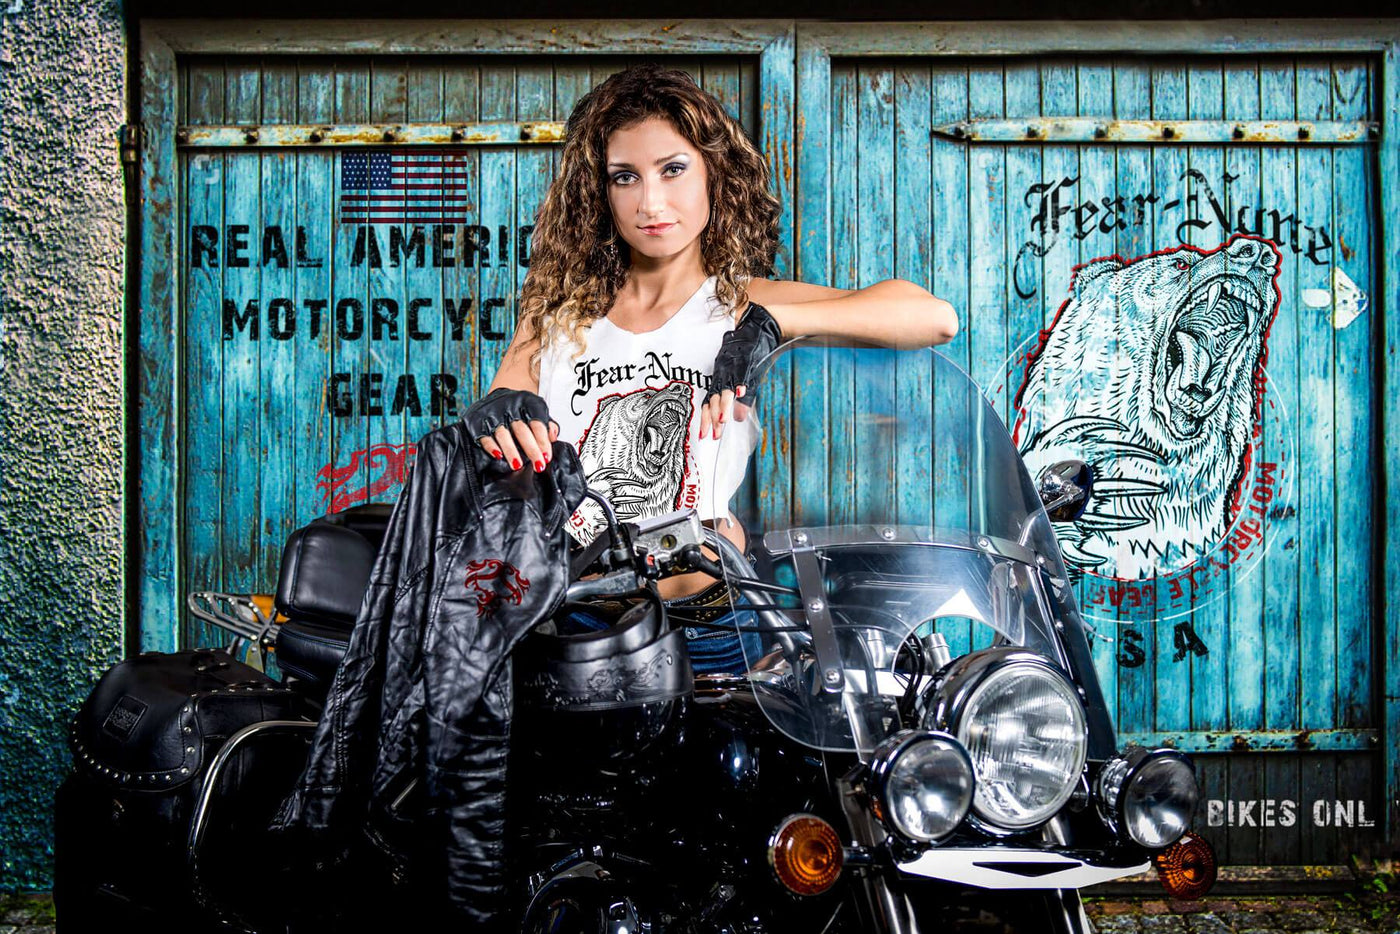 FEAR-NONE Motorcycle Gear Womens Bear Shirts